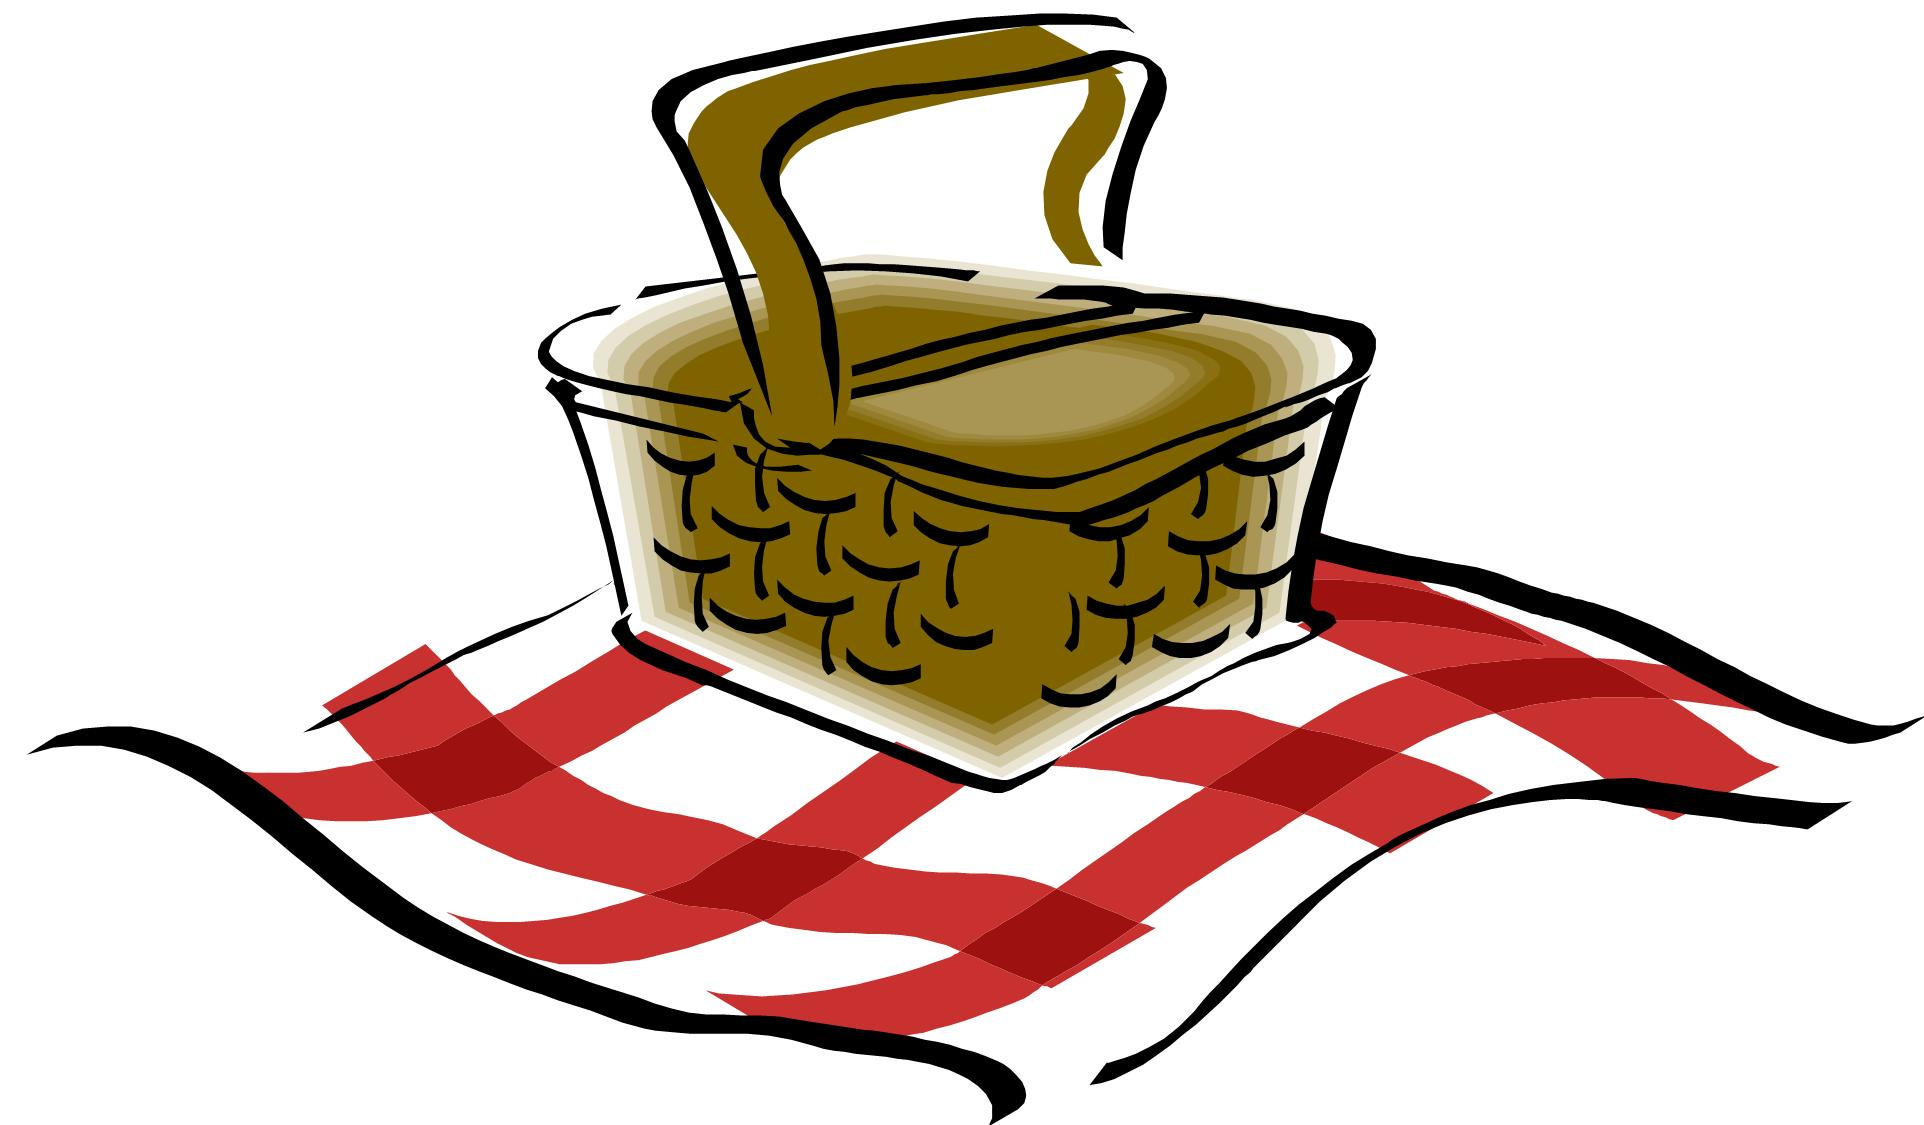 Clip Art Picnic Basket Clip Art picnic basket graphic clipart best church images free images